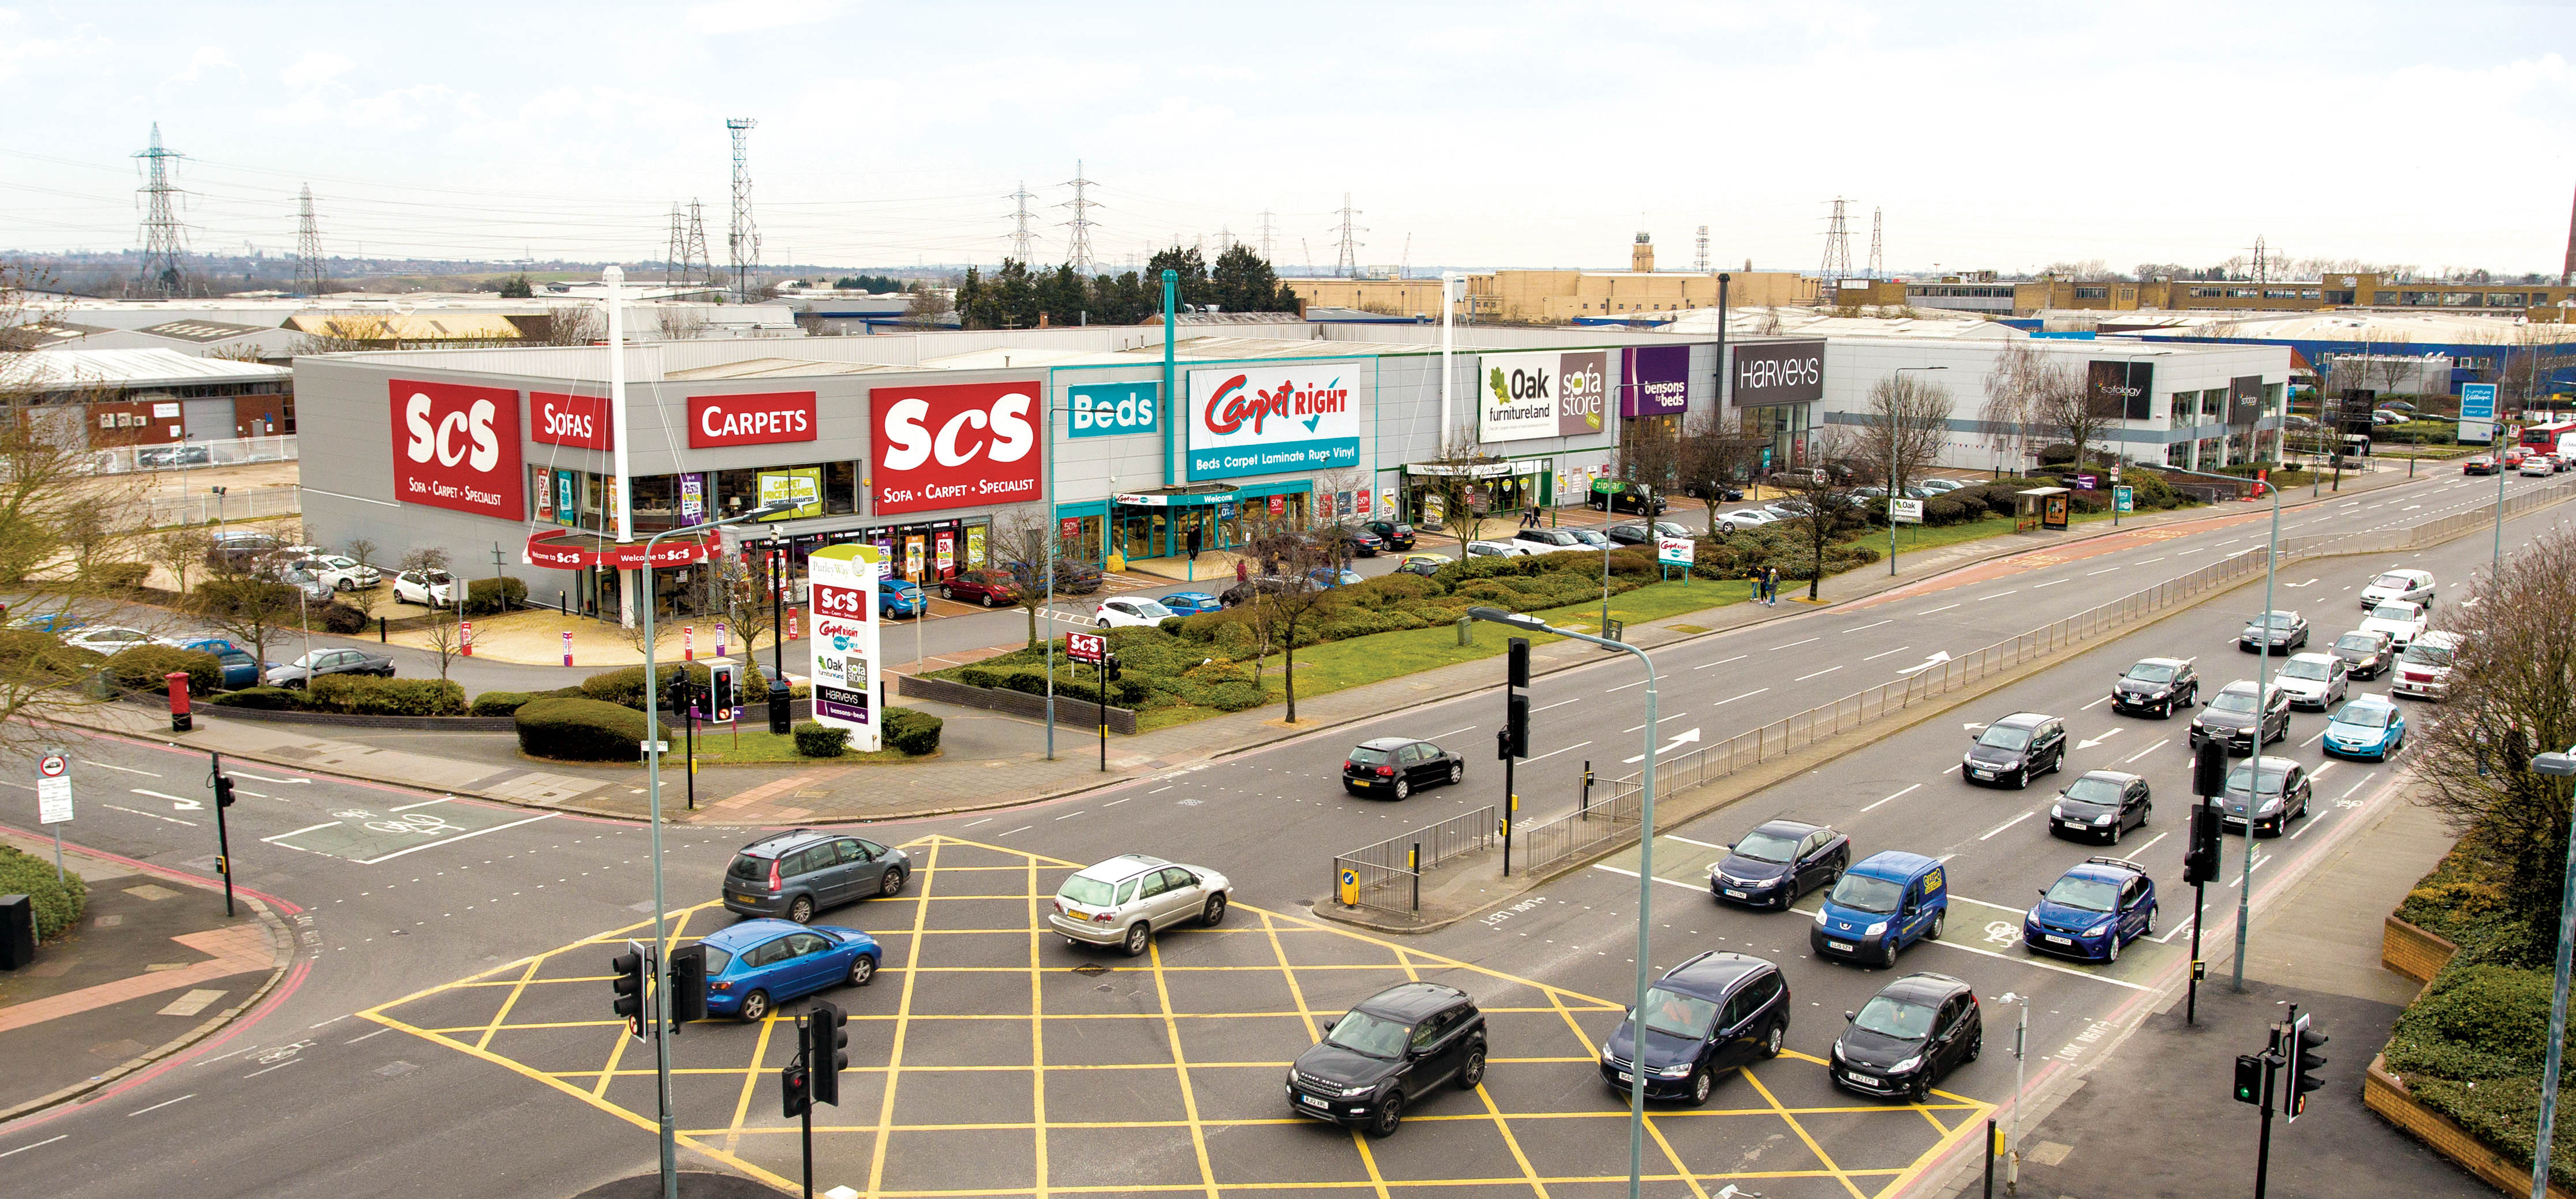 purley way retail park snapped up in 45m property deal. Black Bedroom Furniture Sets. Home Design Ideas